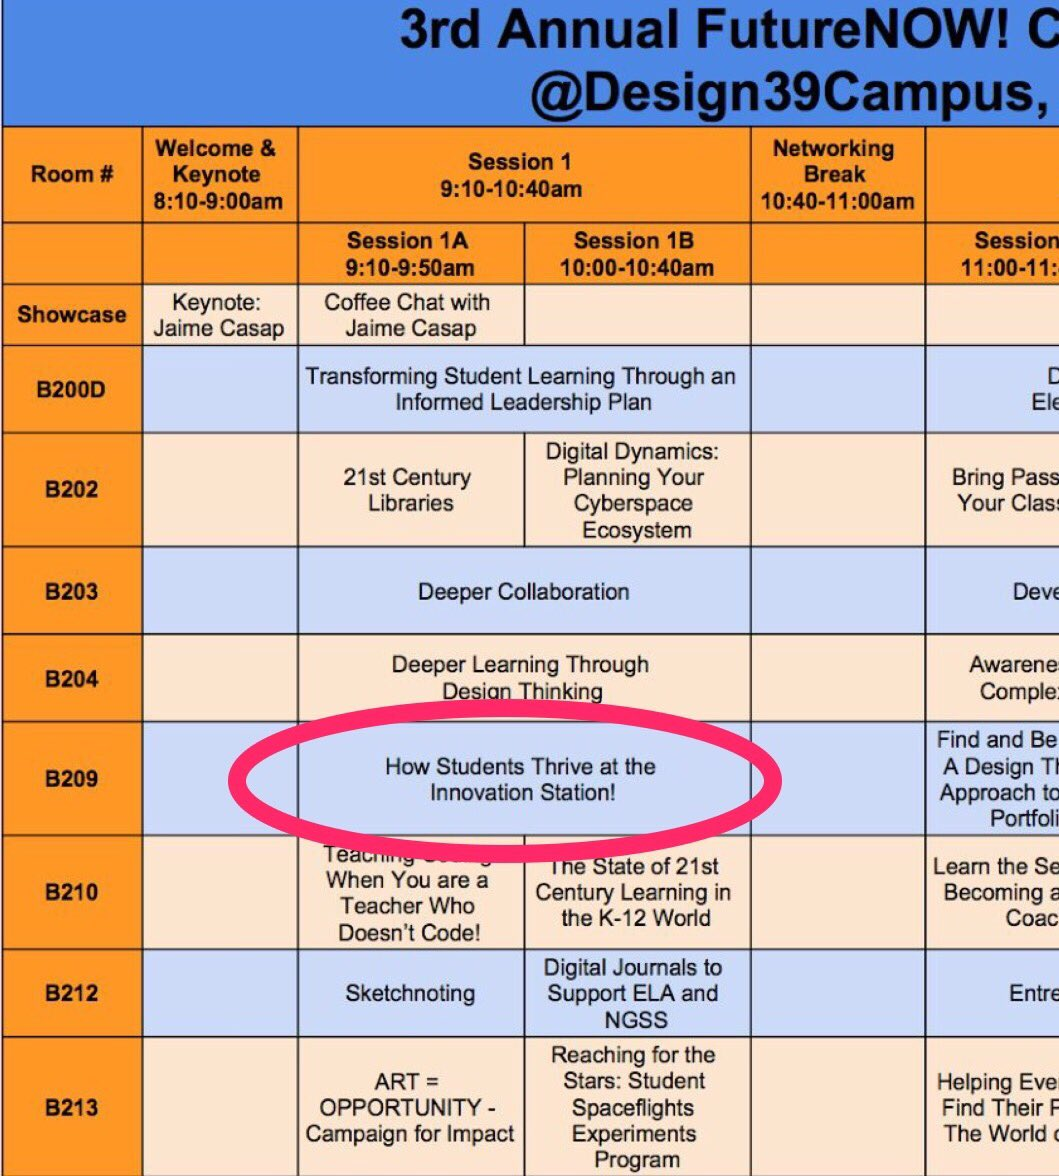 Attending @FutureNOWedu Conference today @Design39Campus? If so, check out our session led by @Mr_MBruder & @MisterDelaCruz! #FutureNowEDU https://t.co/v2FLAp2ERY